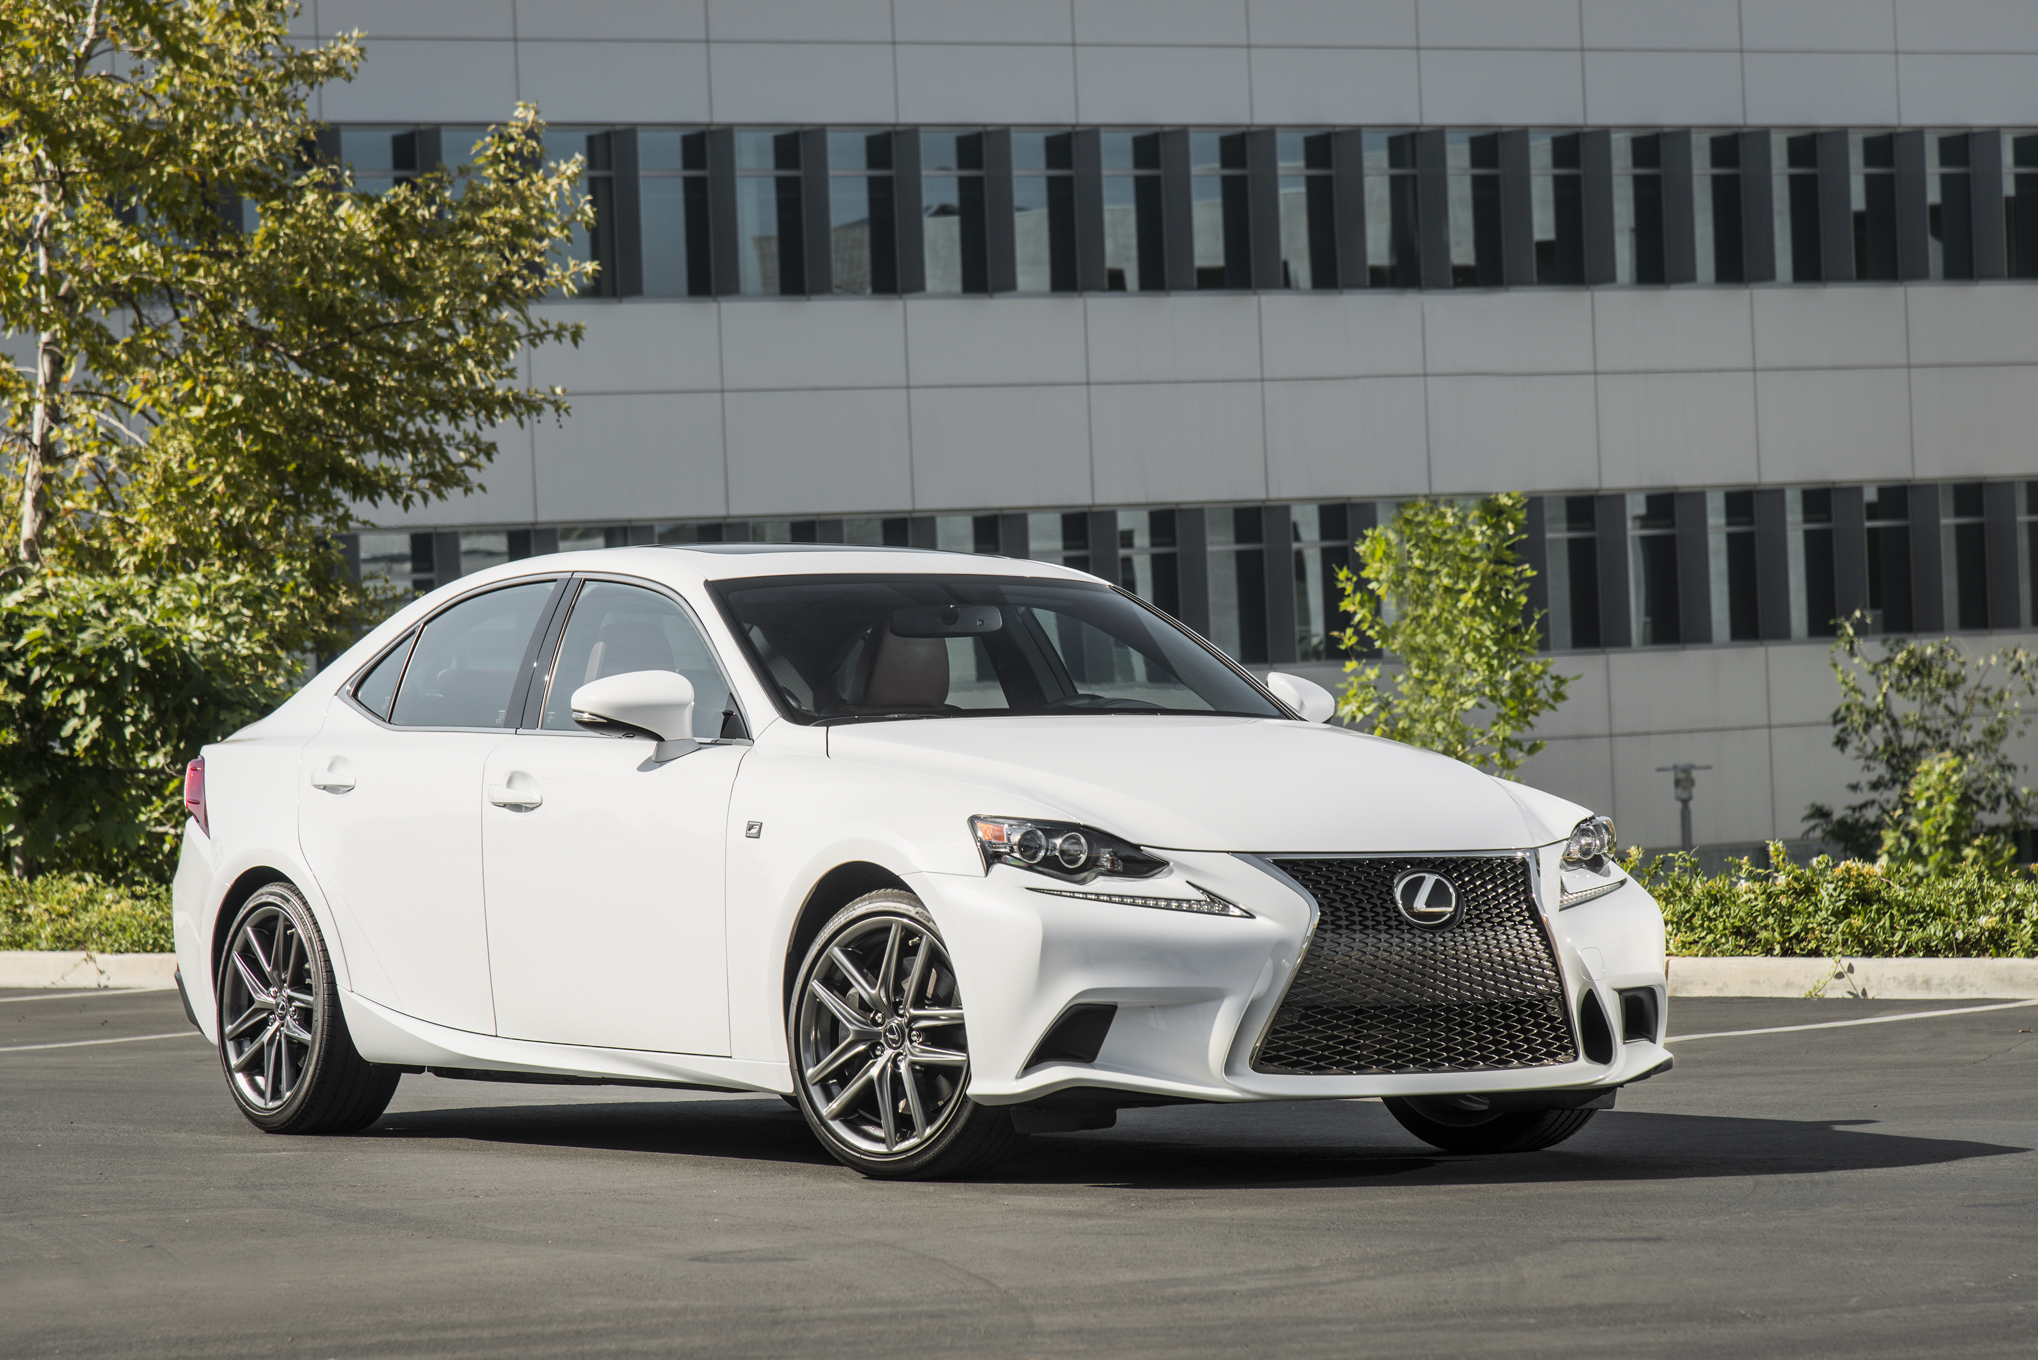 2014 Lexus IS Long Term Update 5: IS 350 F Sport